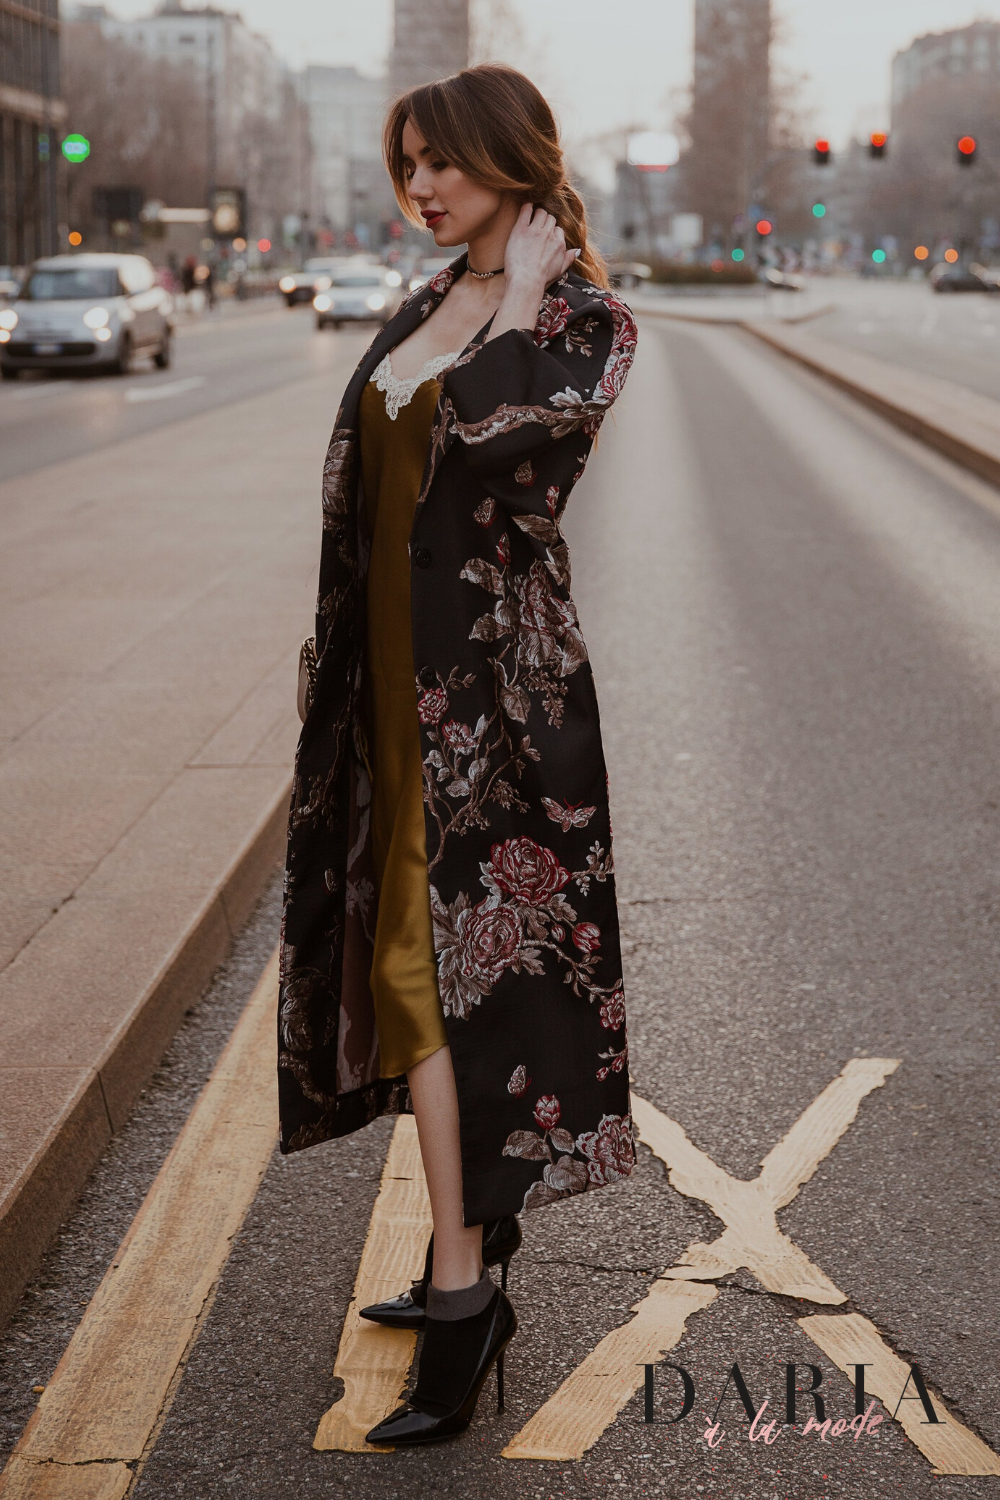 Discover the most trendy outfit this season: Japanese-style trench, cocktail silk dress, decollete shoes and cross-body Chanel bag. You'll love our fusion style. #trendyoutfits #silkcocktaildress #chanelbagoutfit #fusionstyle #japanesestyletrench #decolleteshoes #fasioninspiration